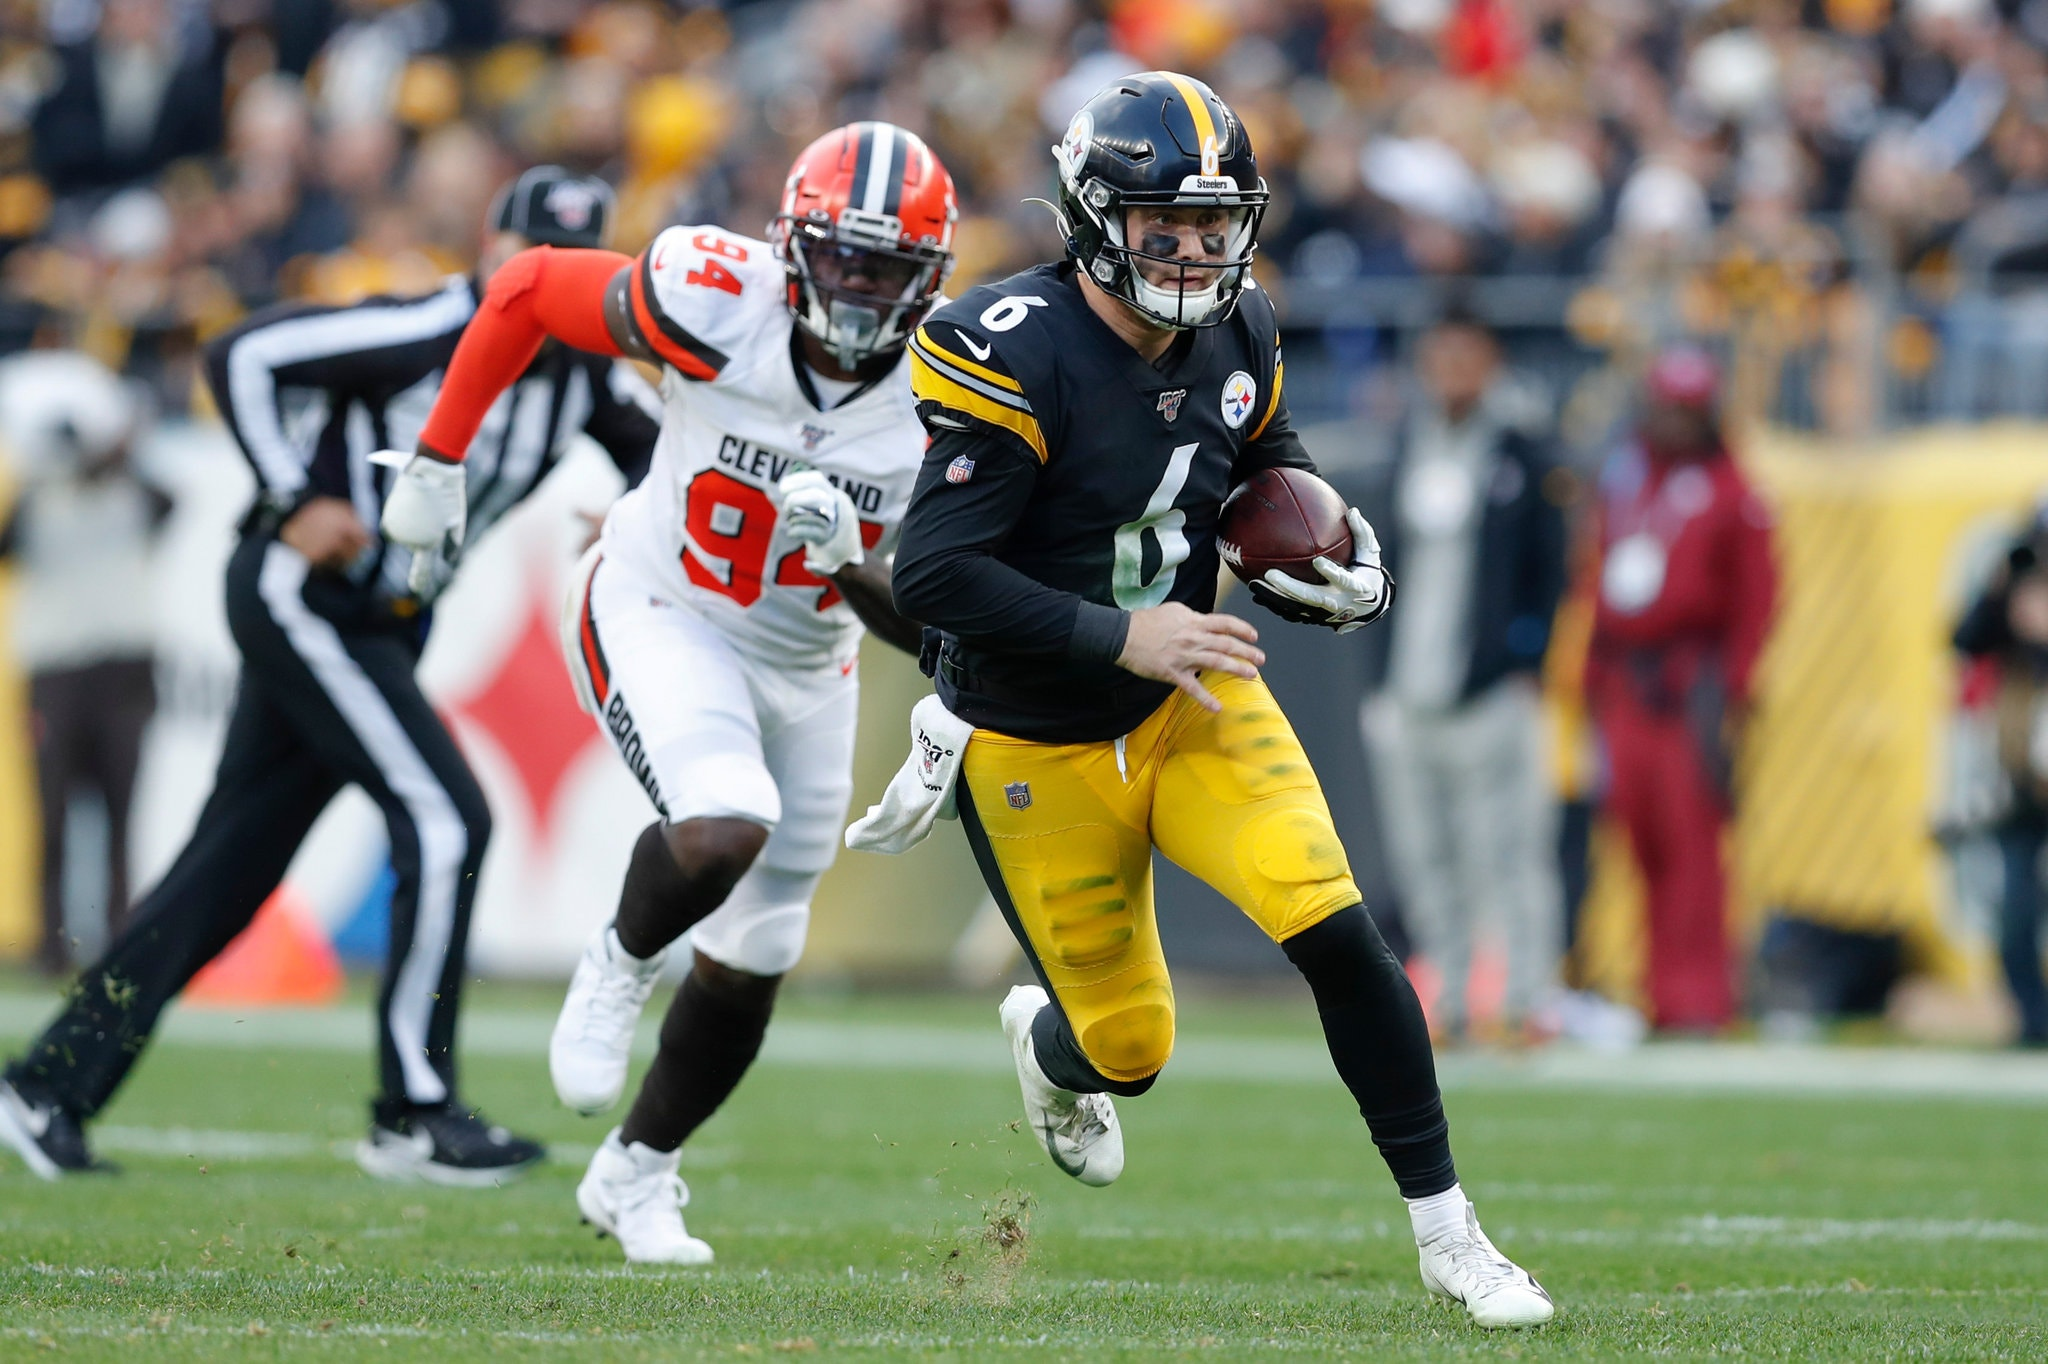 Steelers Take Down Browns, Remain In Playoff Chase